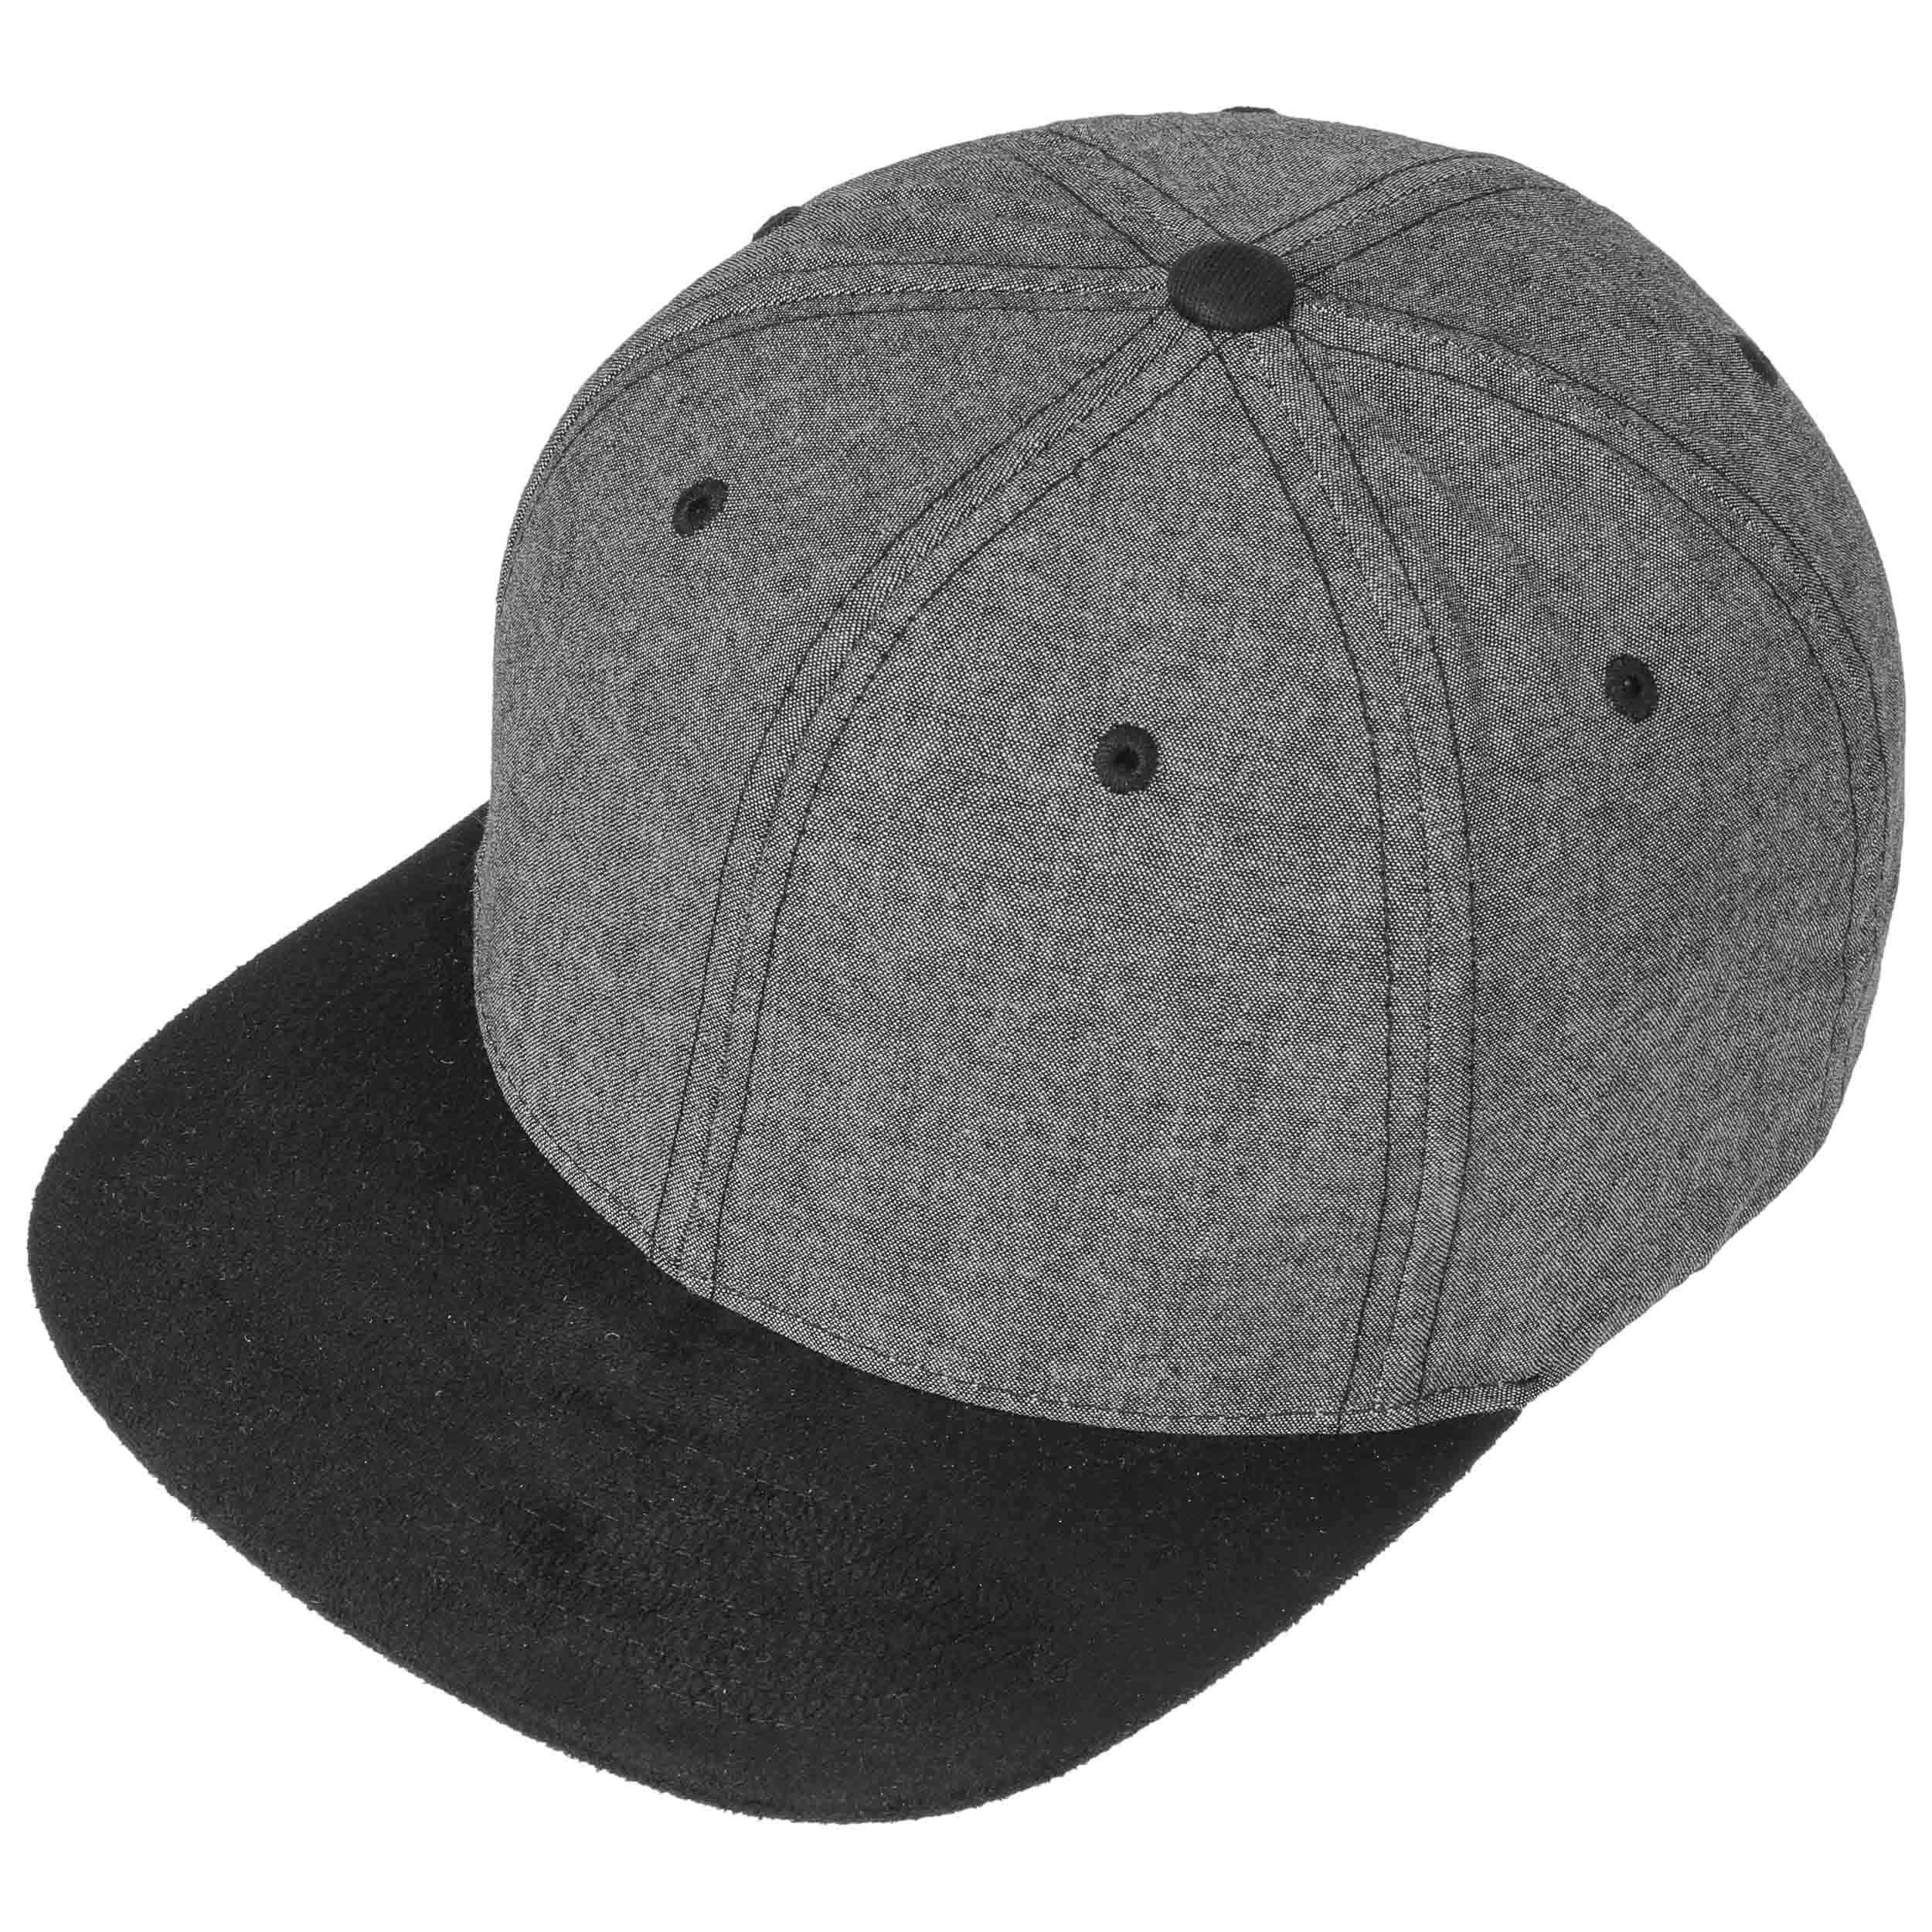 Chambray Suede Snapback Cap - black 1 · Chambray Suede Snapback Cap - light  blue ... cc0d8ce175d4